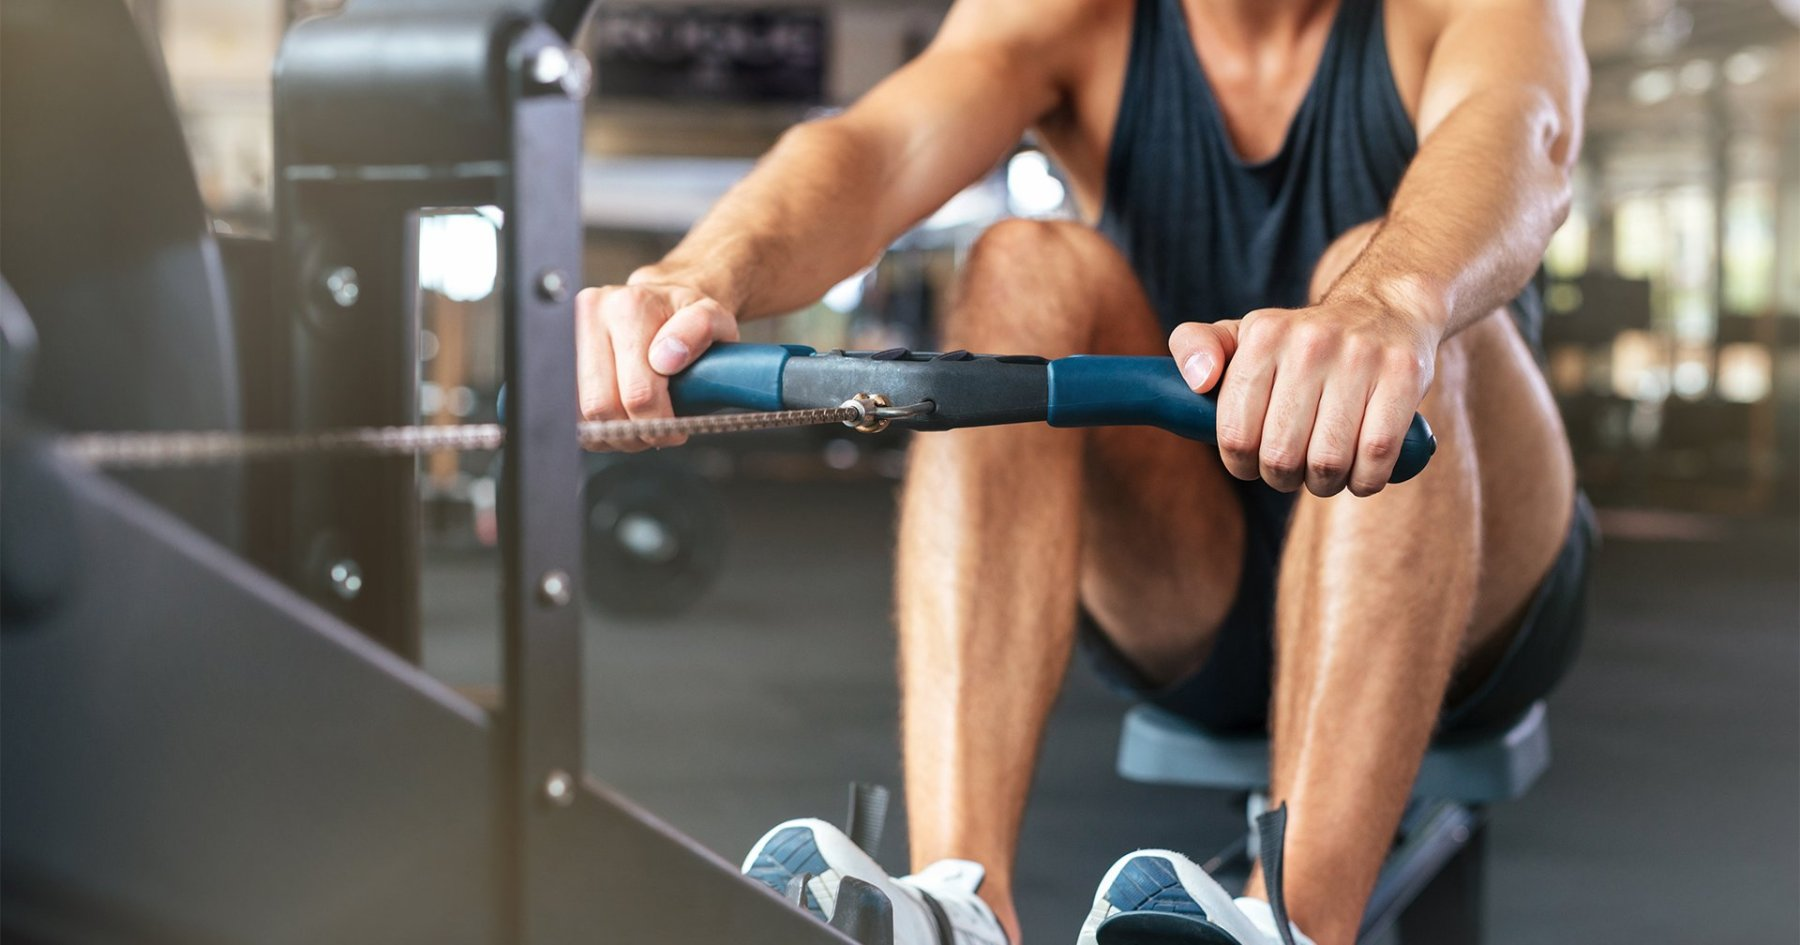 The Five Gyms That'll Keep Your Fitness Resolutions in Check